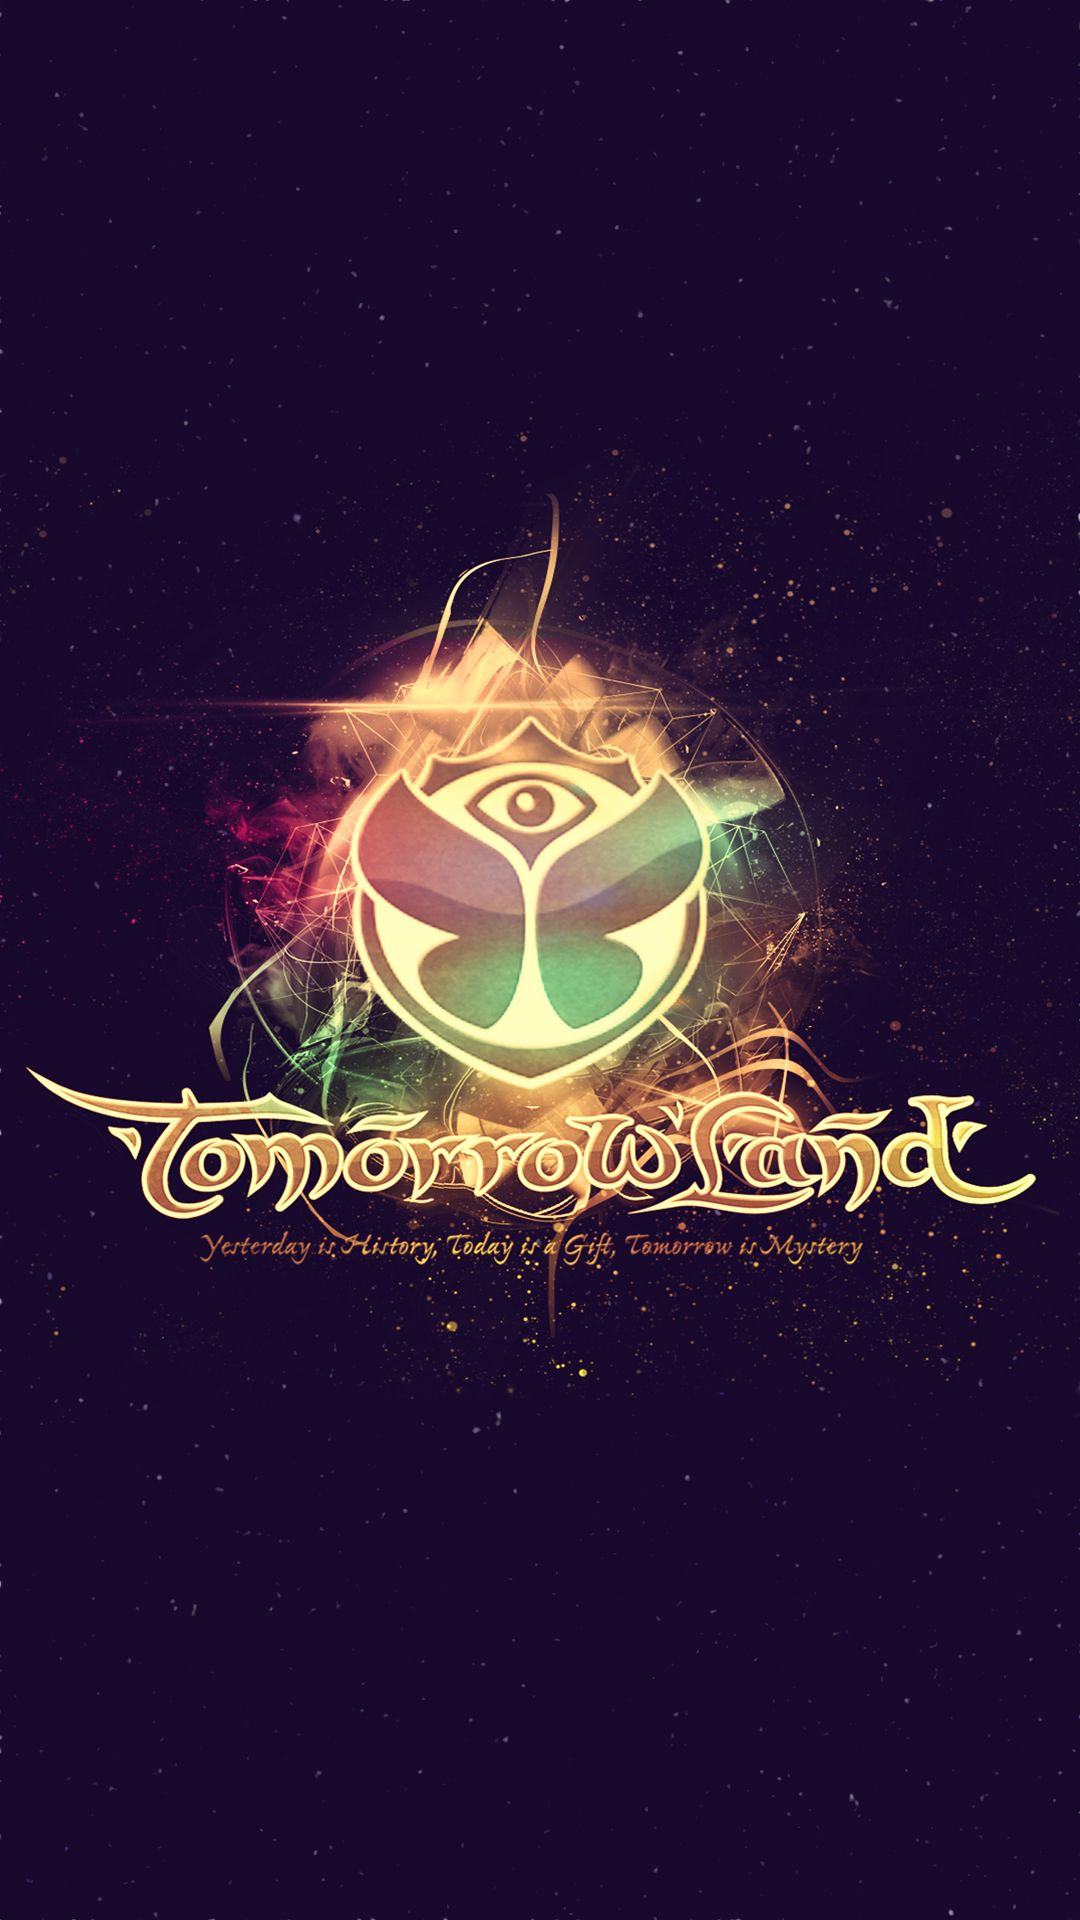 70 Music iPhone Wallpapers For Music Manias | E D M | Music festival logos, Tomorrowland music ...